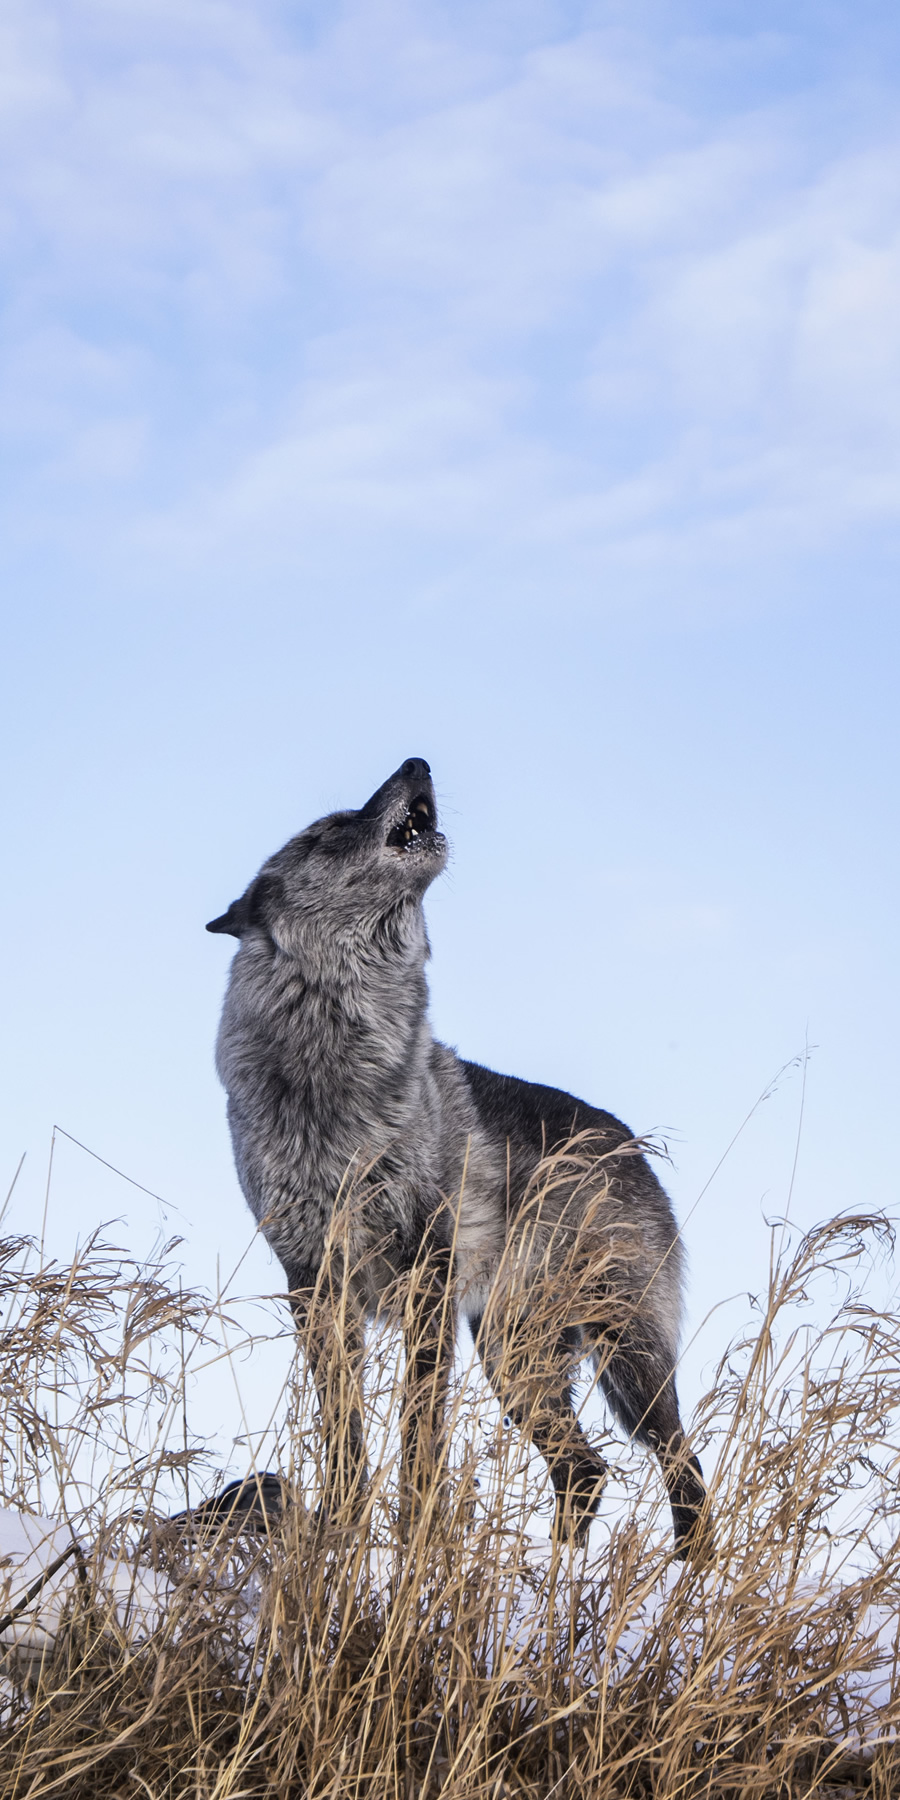 Howling grey wolf on the set of a hollywood film